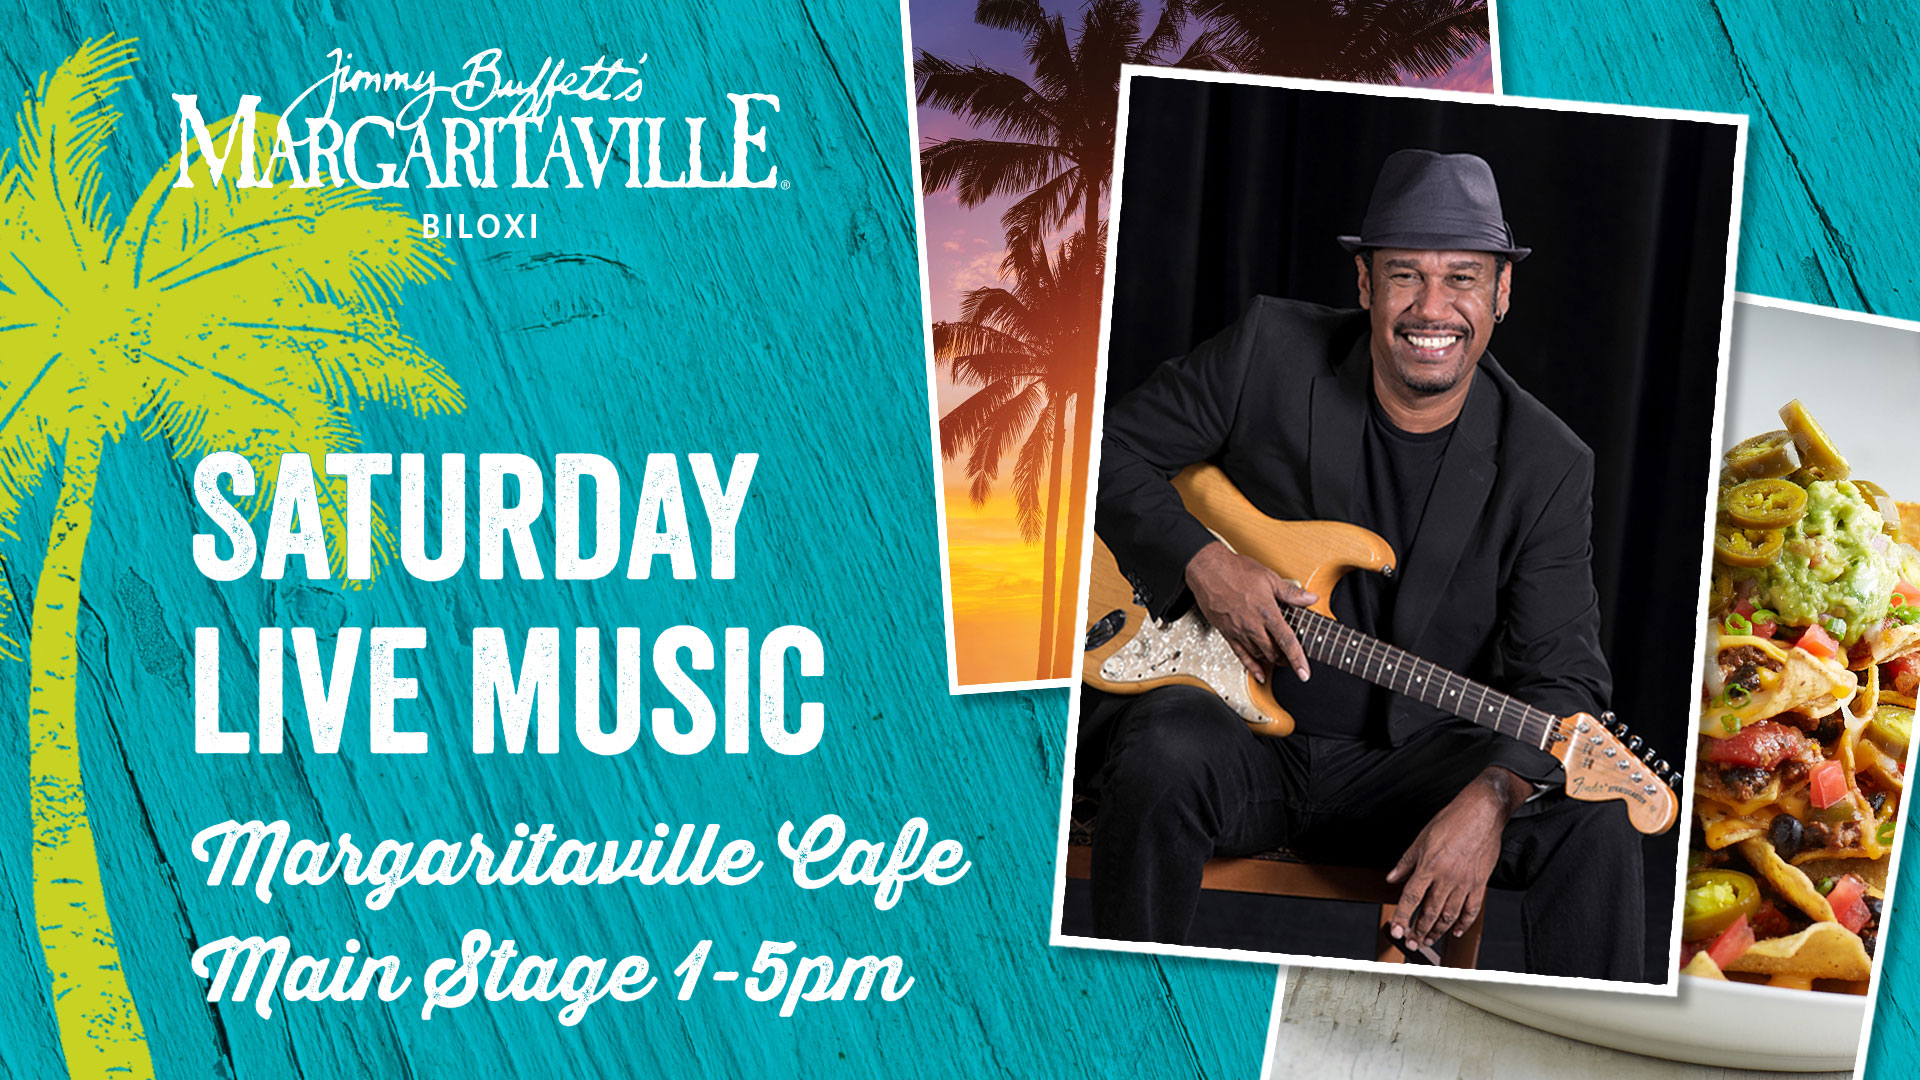 Anderson Domingues plays at the Margaritaville Cafe main stage every Saturday from 1pm to 5pm